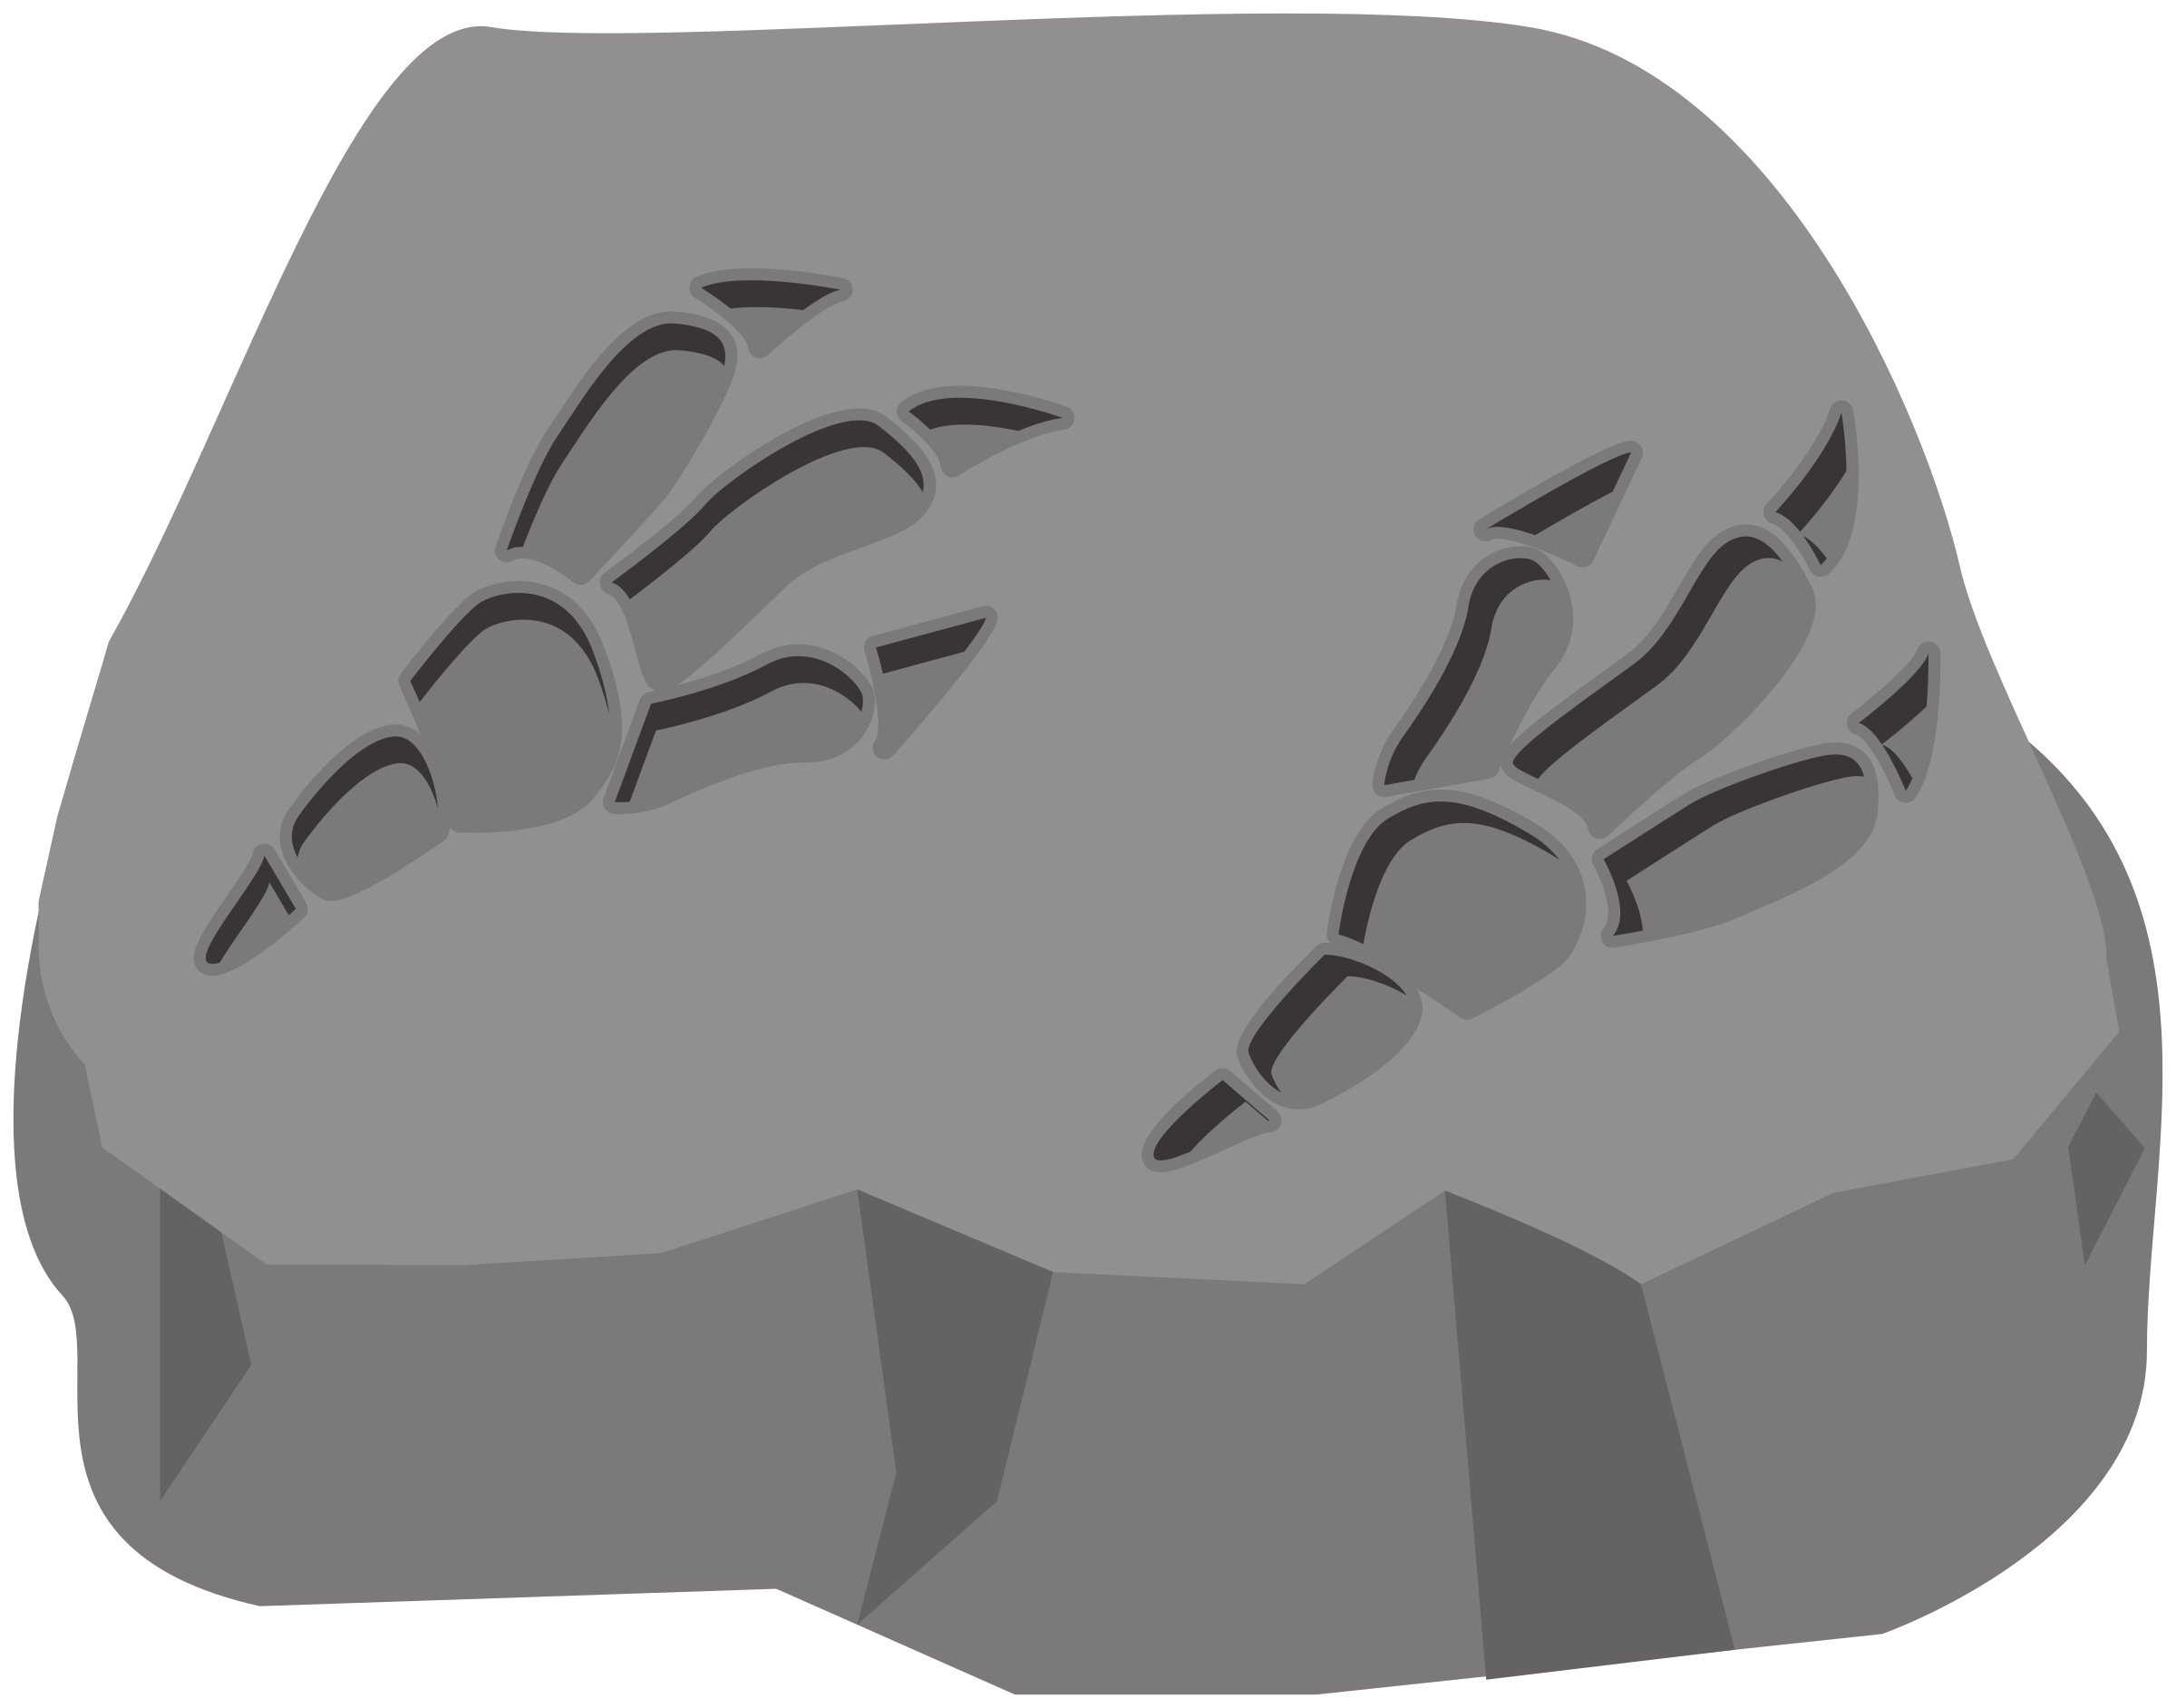 Dinosaur footprint png. Fossil icons free and